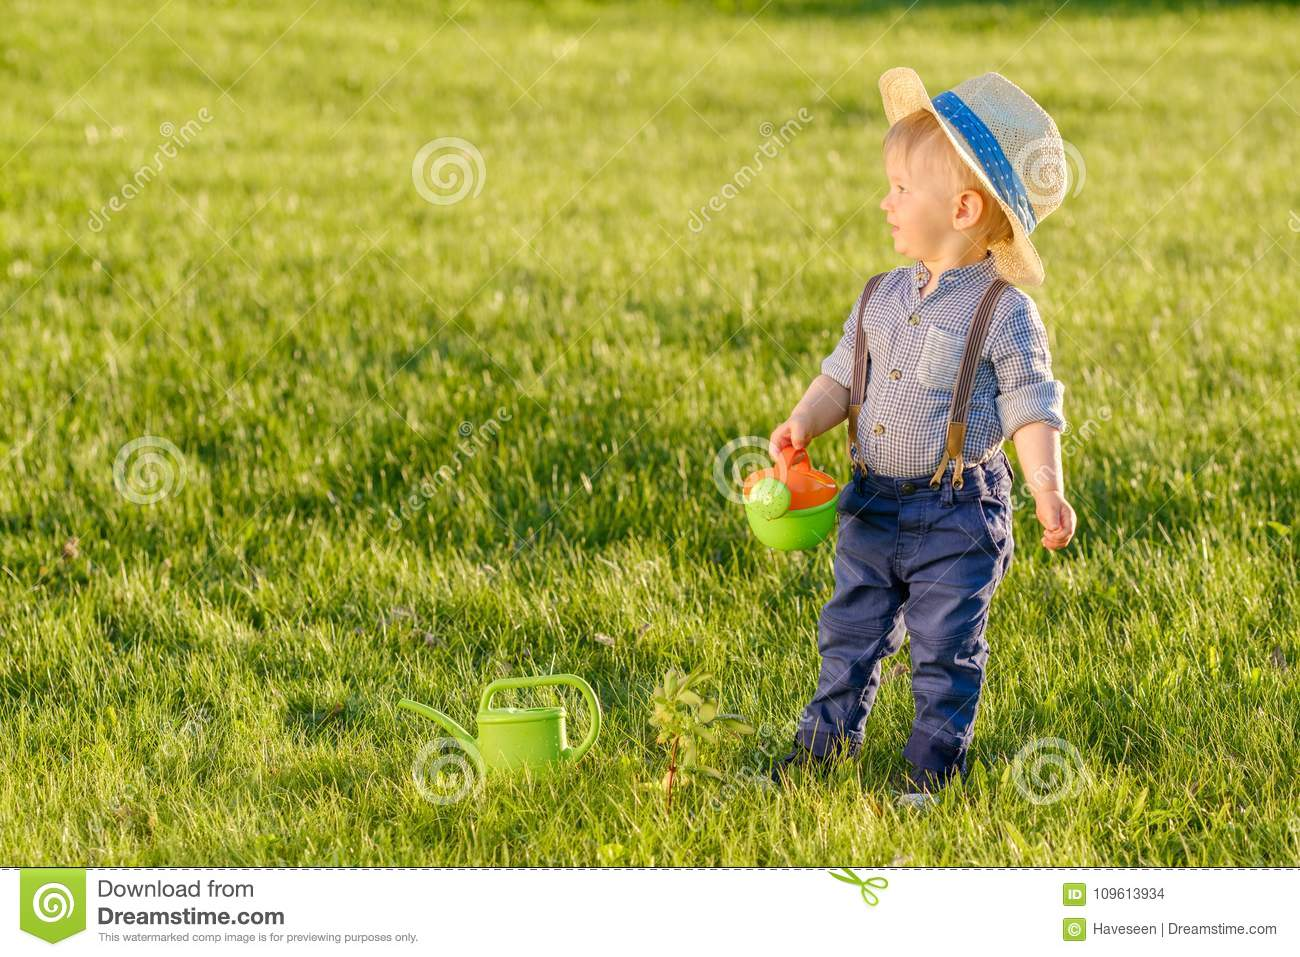 Toddler Child Outdoors. One Year Old Baby Boy Wearing Straw Hat ... 56a838ef97b